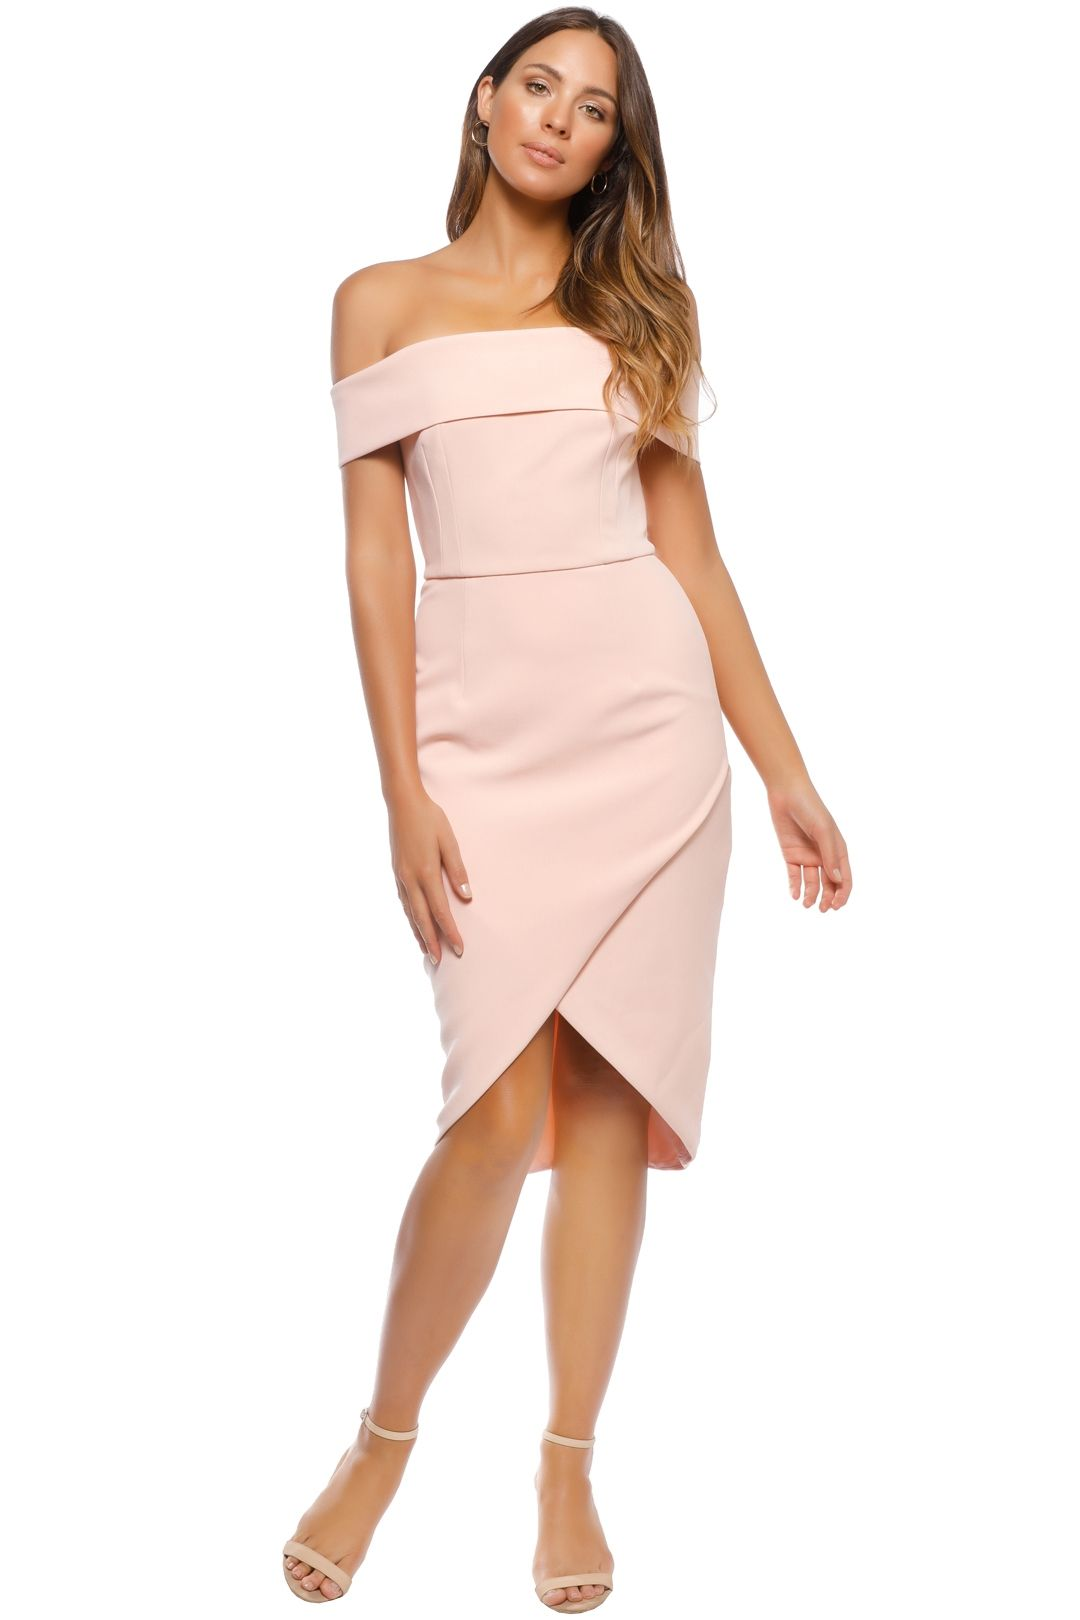 Unspoken - Jamai Short Dress - Pale Blush - Front